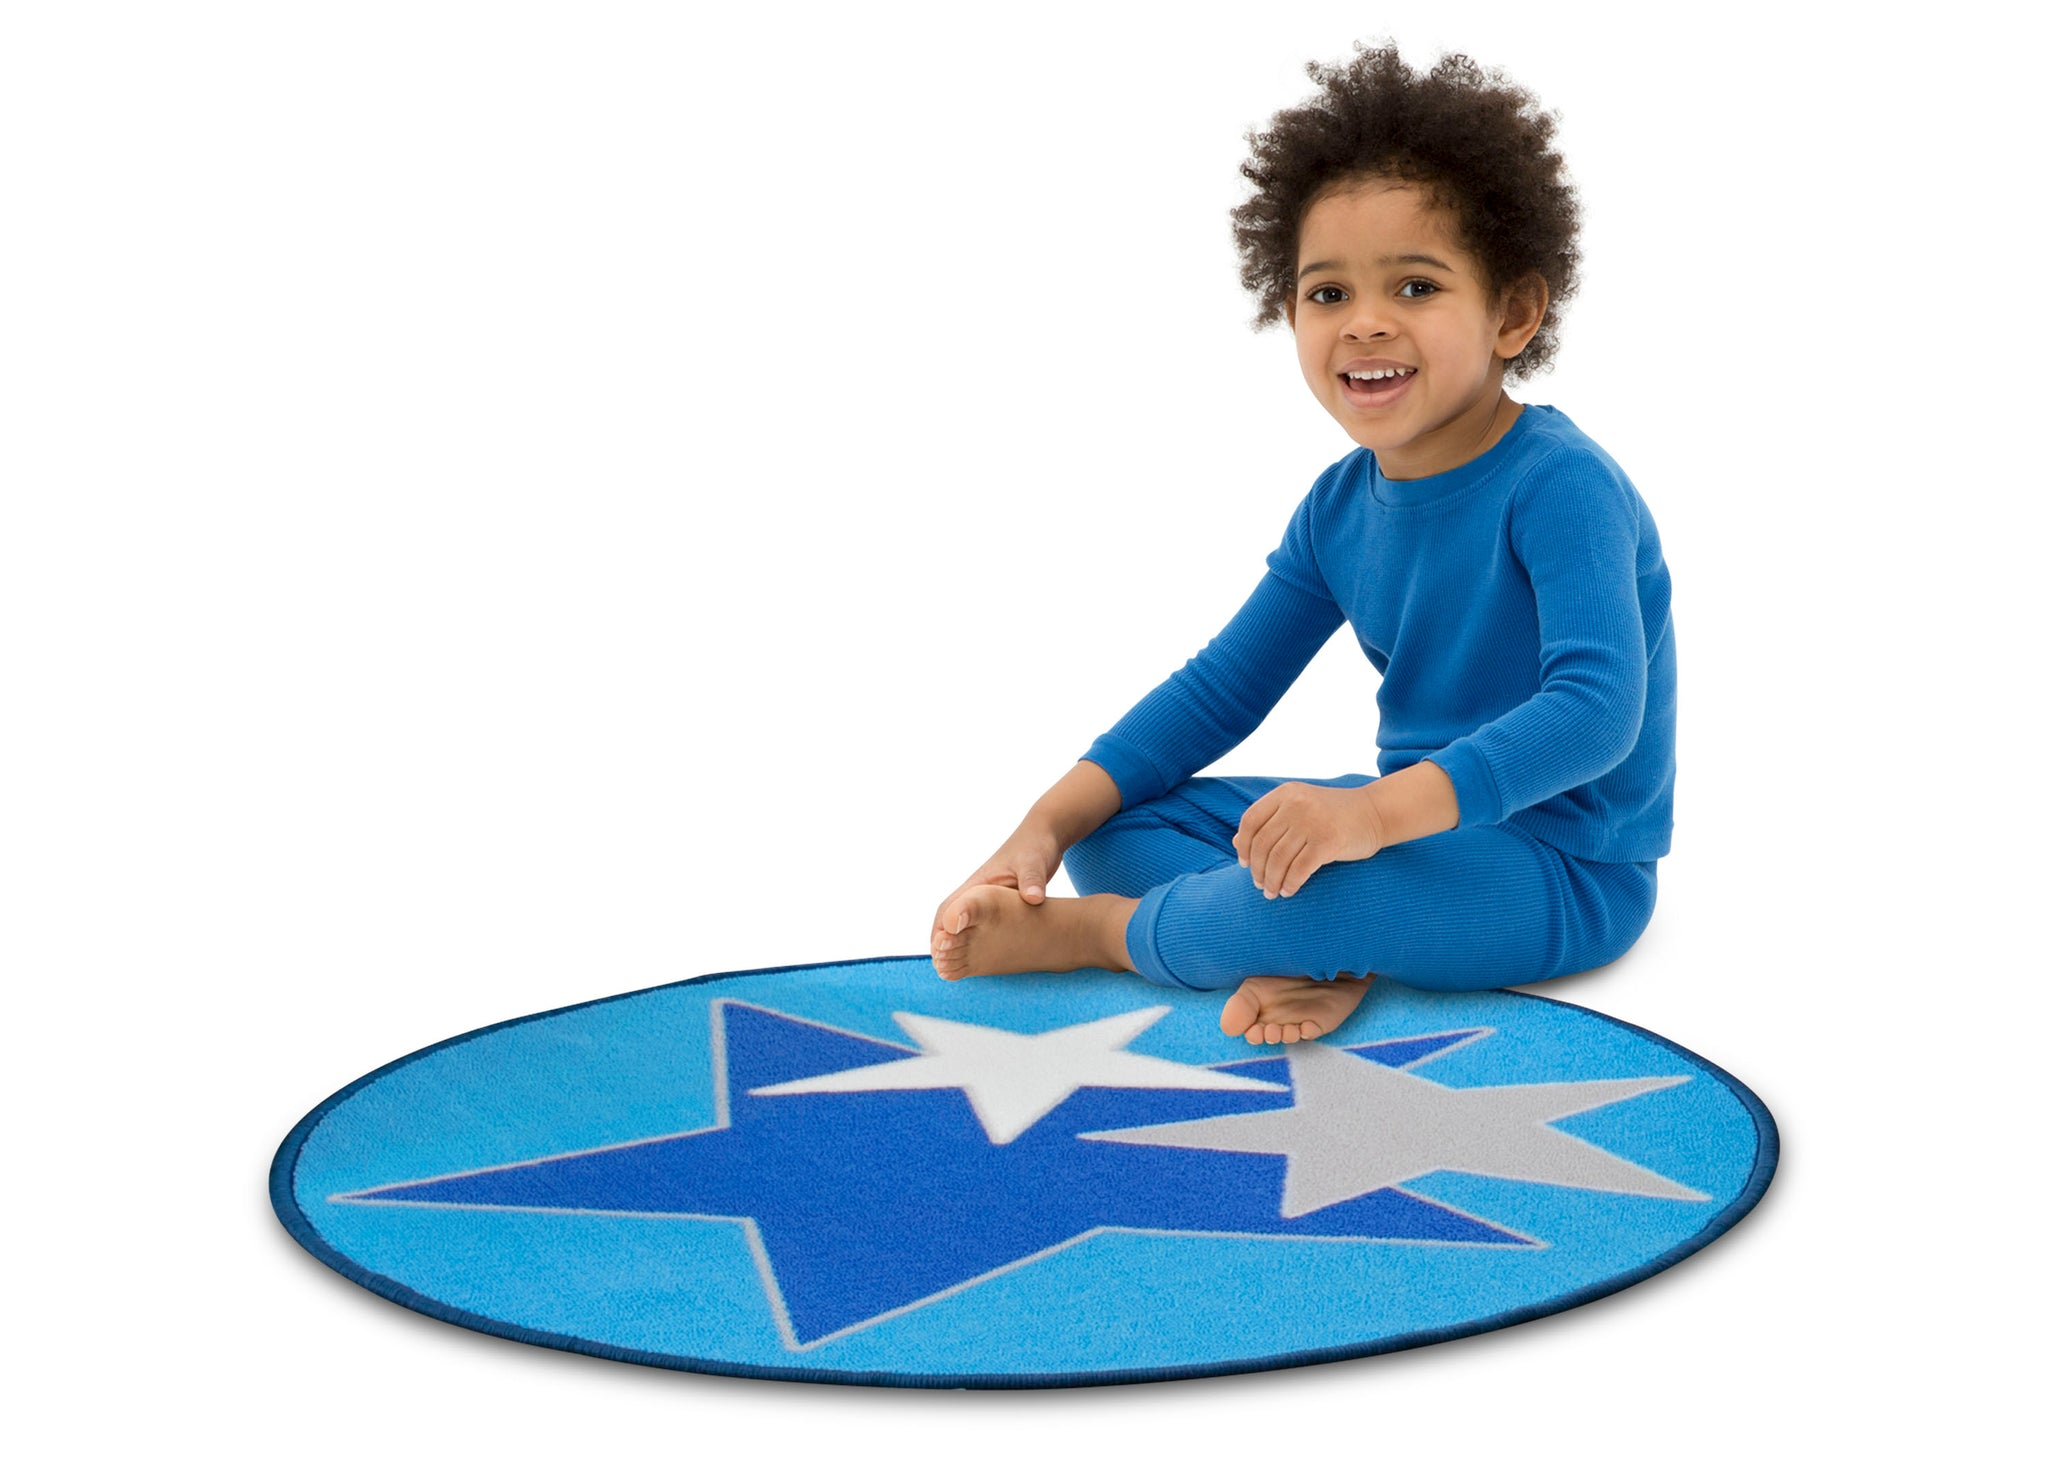 Delta Children Stars (3207) Non-Slip Area Rug for Boys, Model View